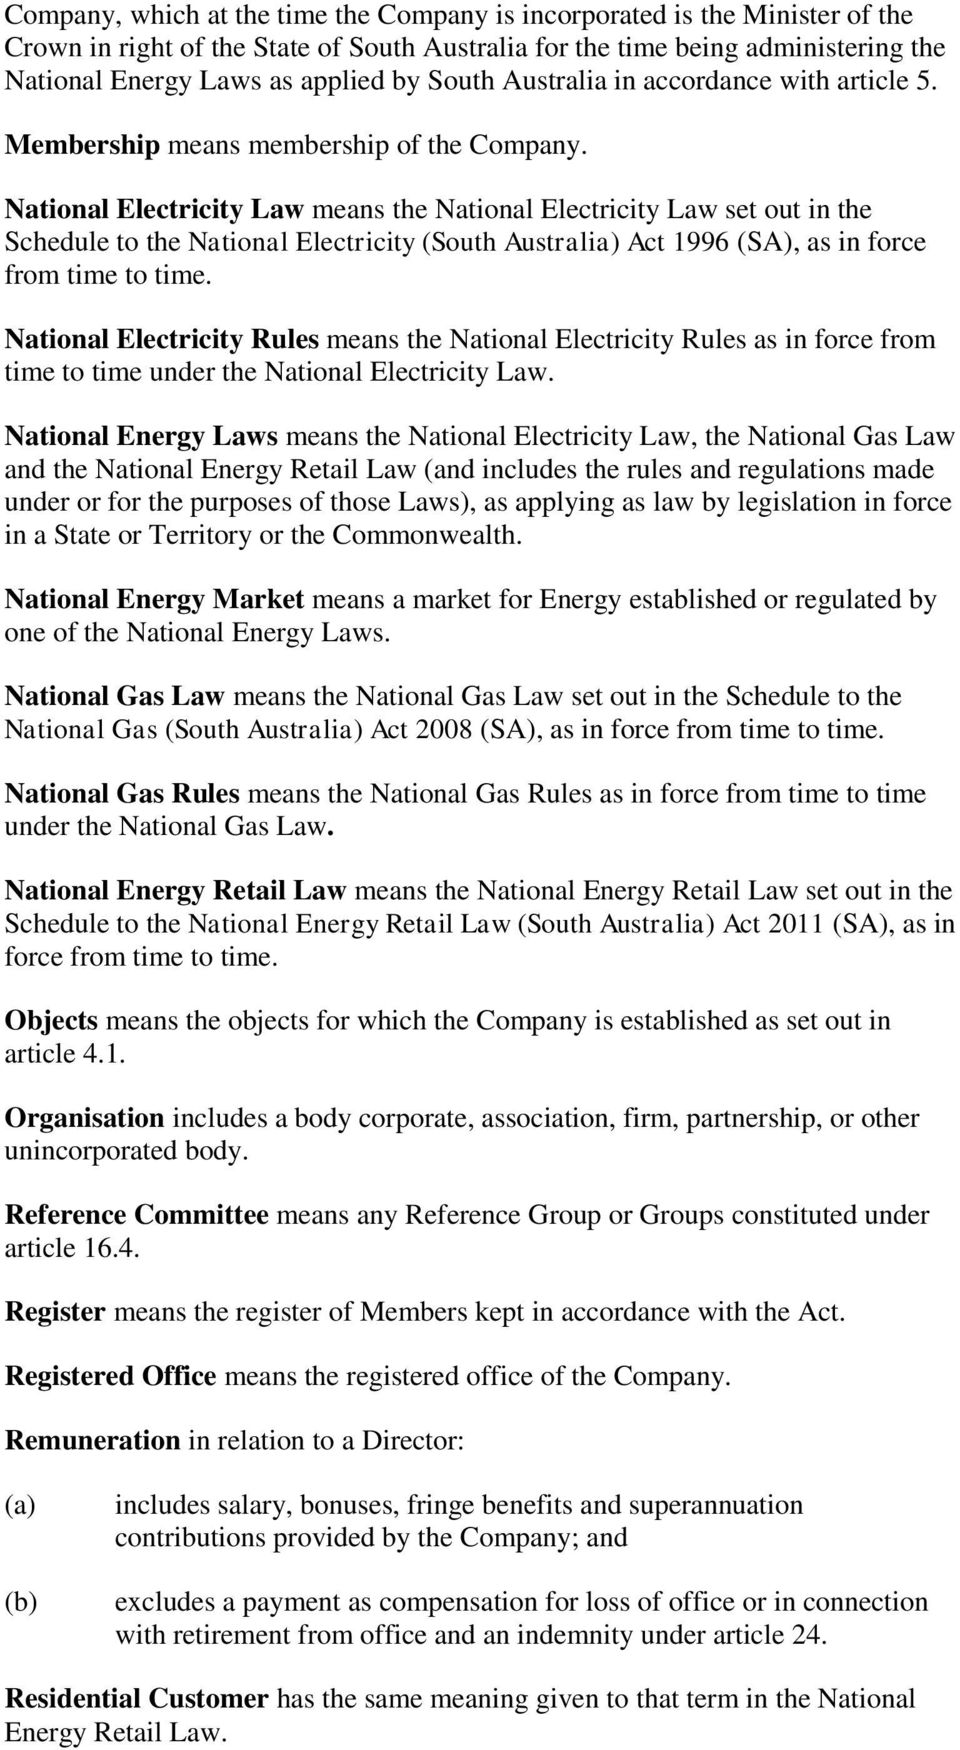 National Electricity Law means the National Electricity Law set out in the Schedule to the National Electricity (South Australia) Act 1996 (SA), as in force from time to time.